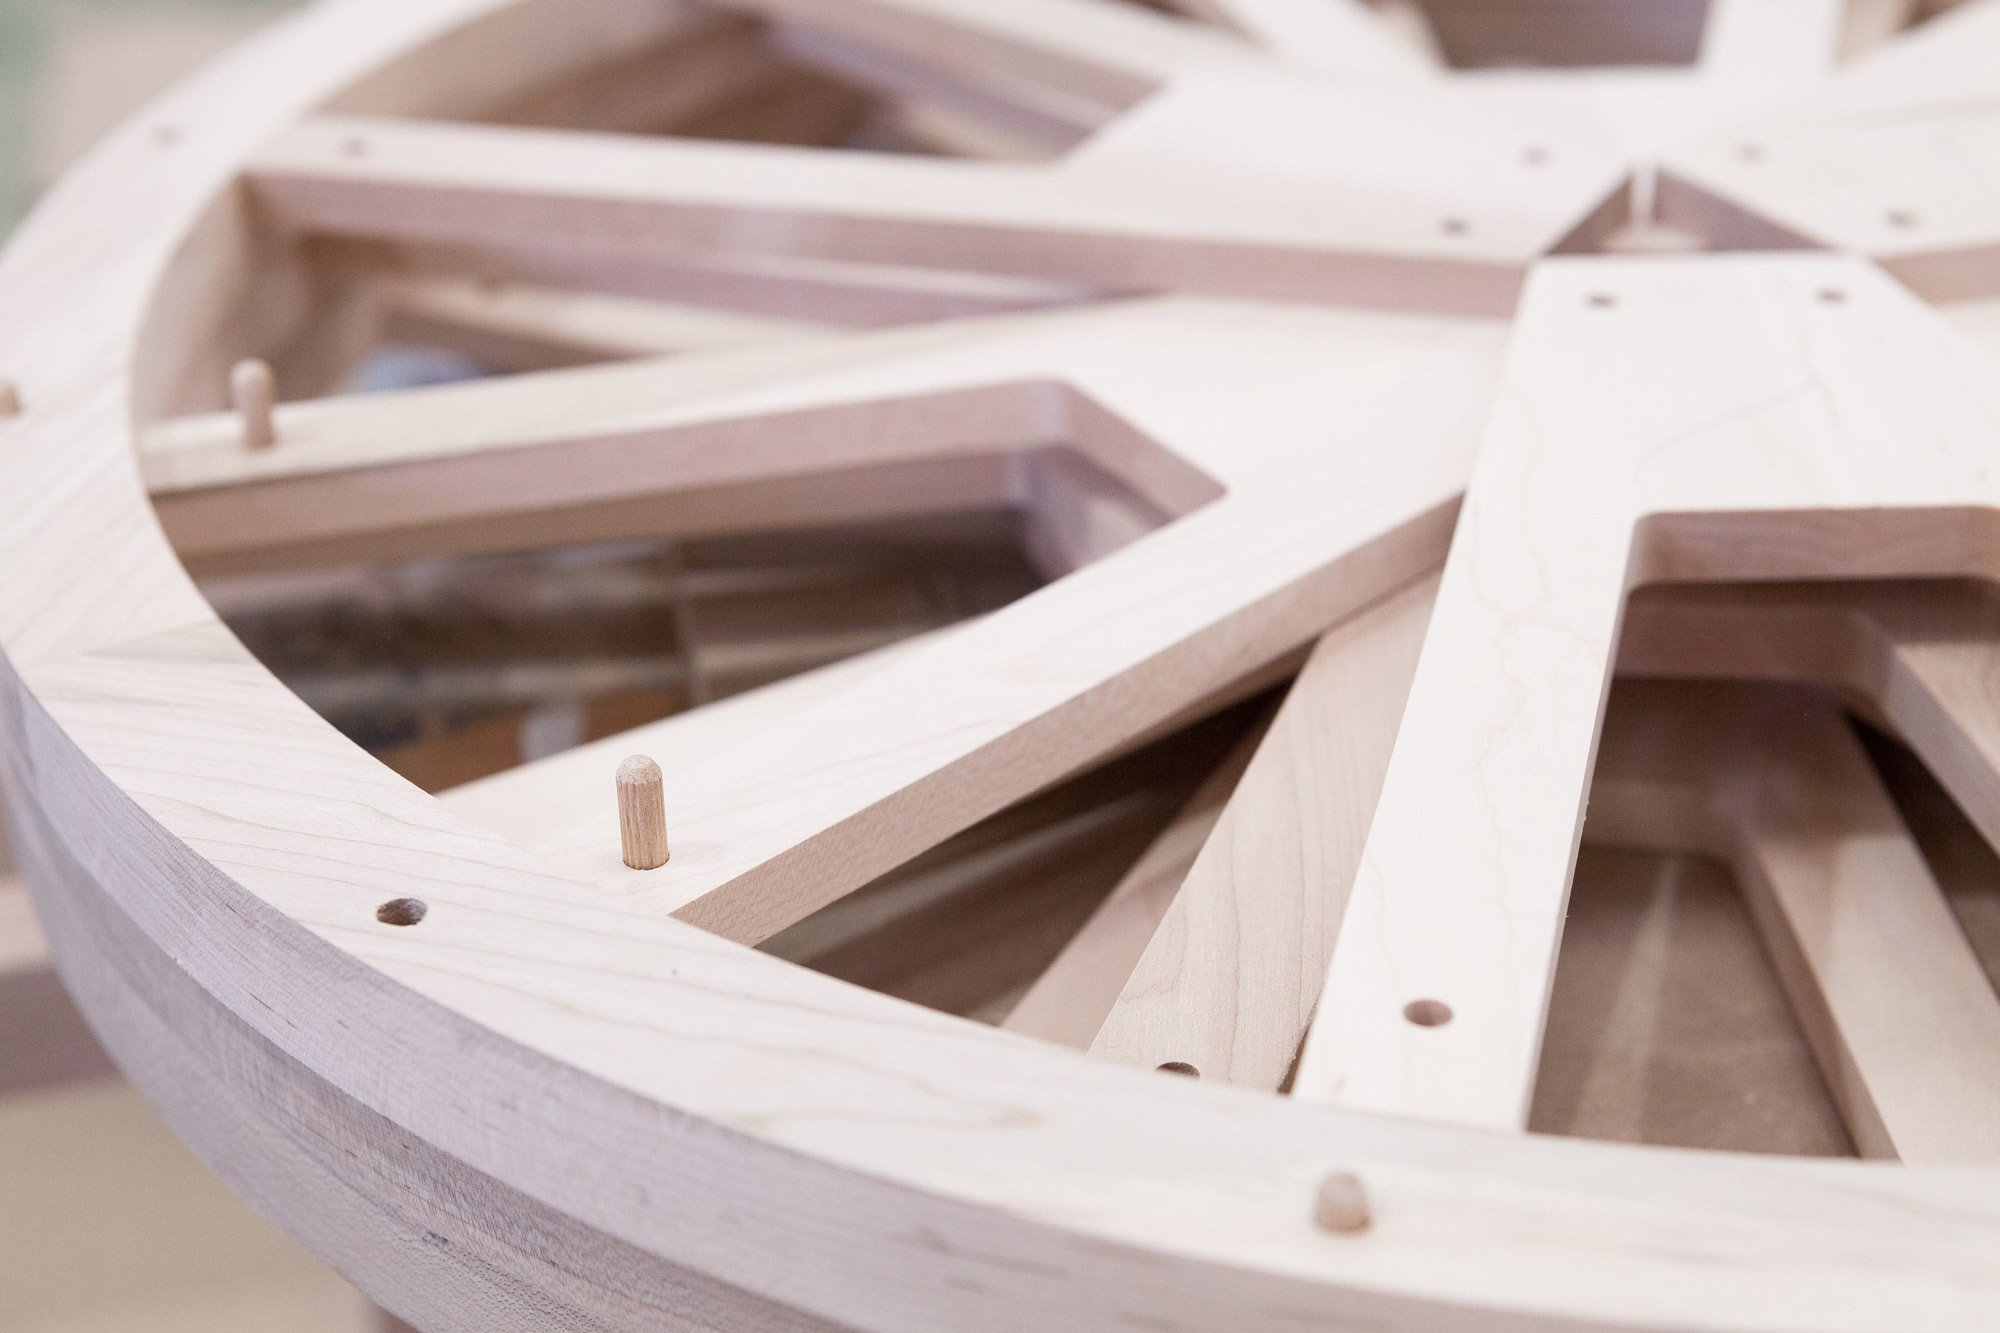 Tulipwood wheels for the pull out blinds of 'A Window to the Arzak Universe'  © Uxío Da Vila